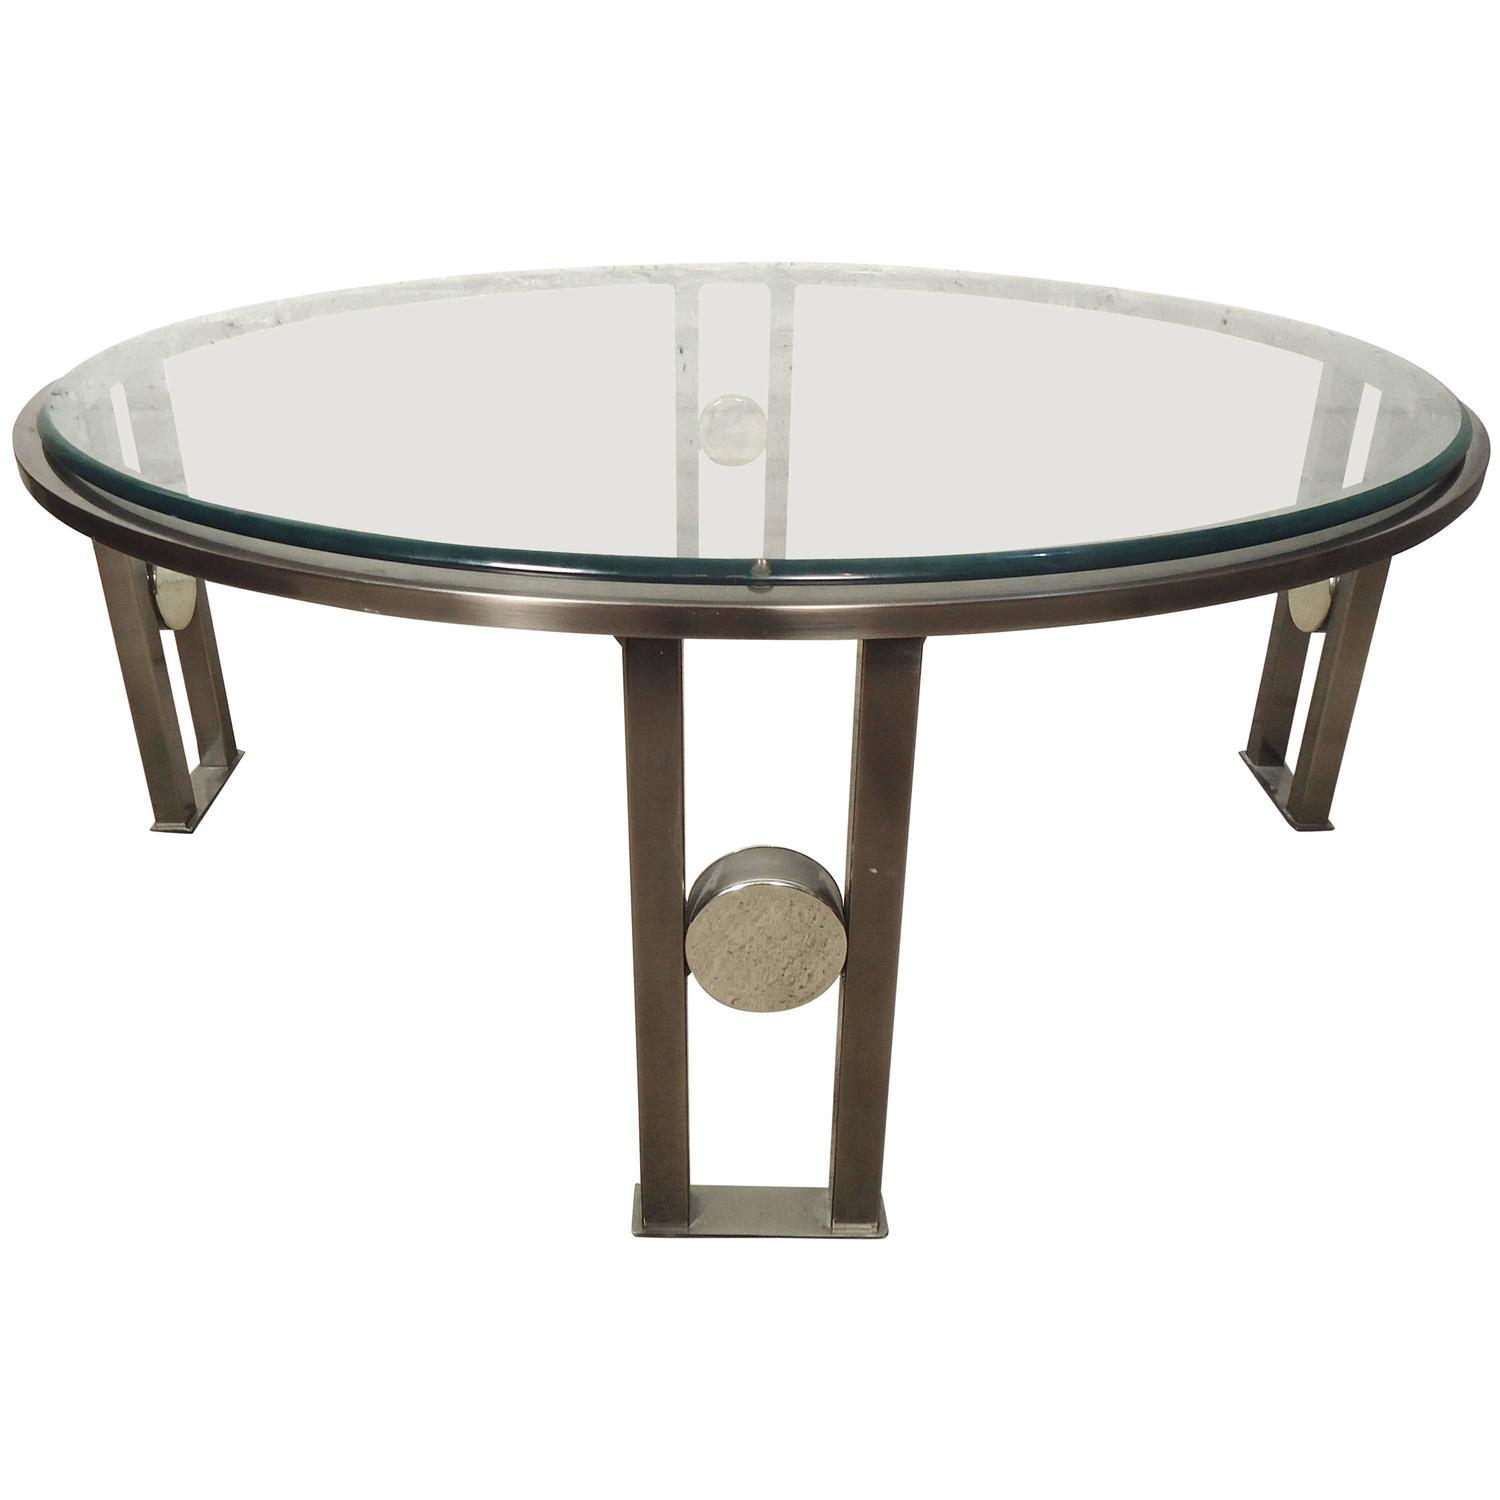 round glass top coffee table at 1stdibs ForRound Glass Coffee Table Top